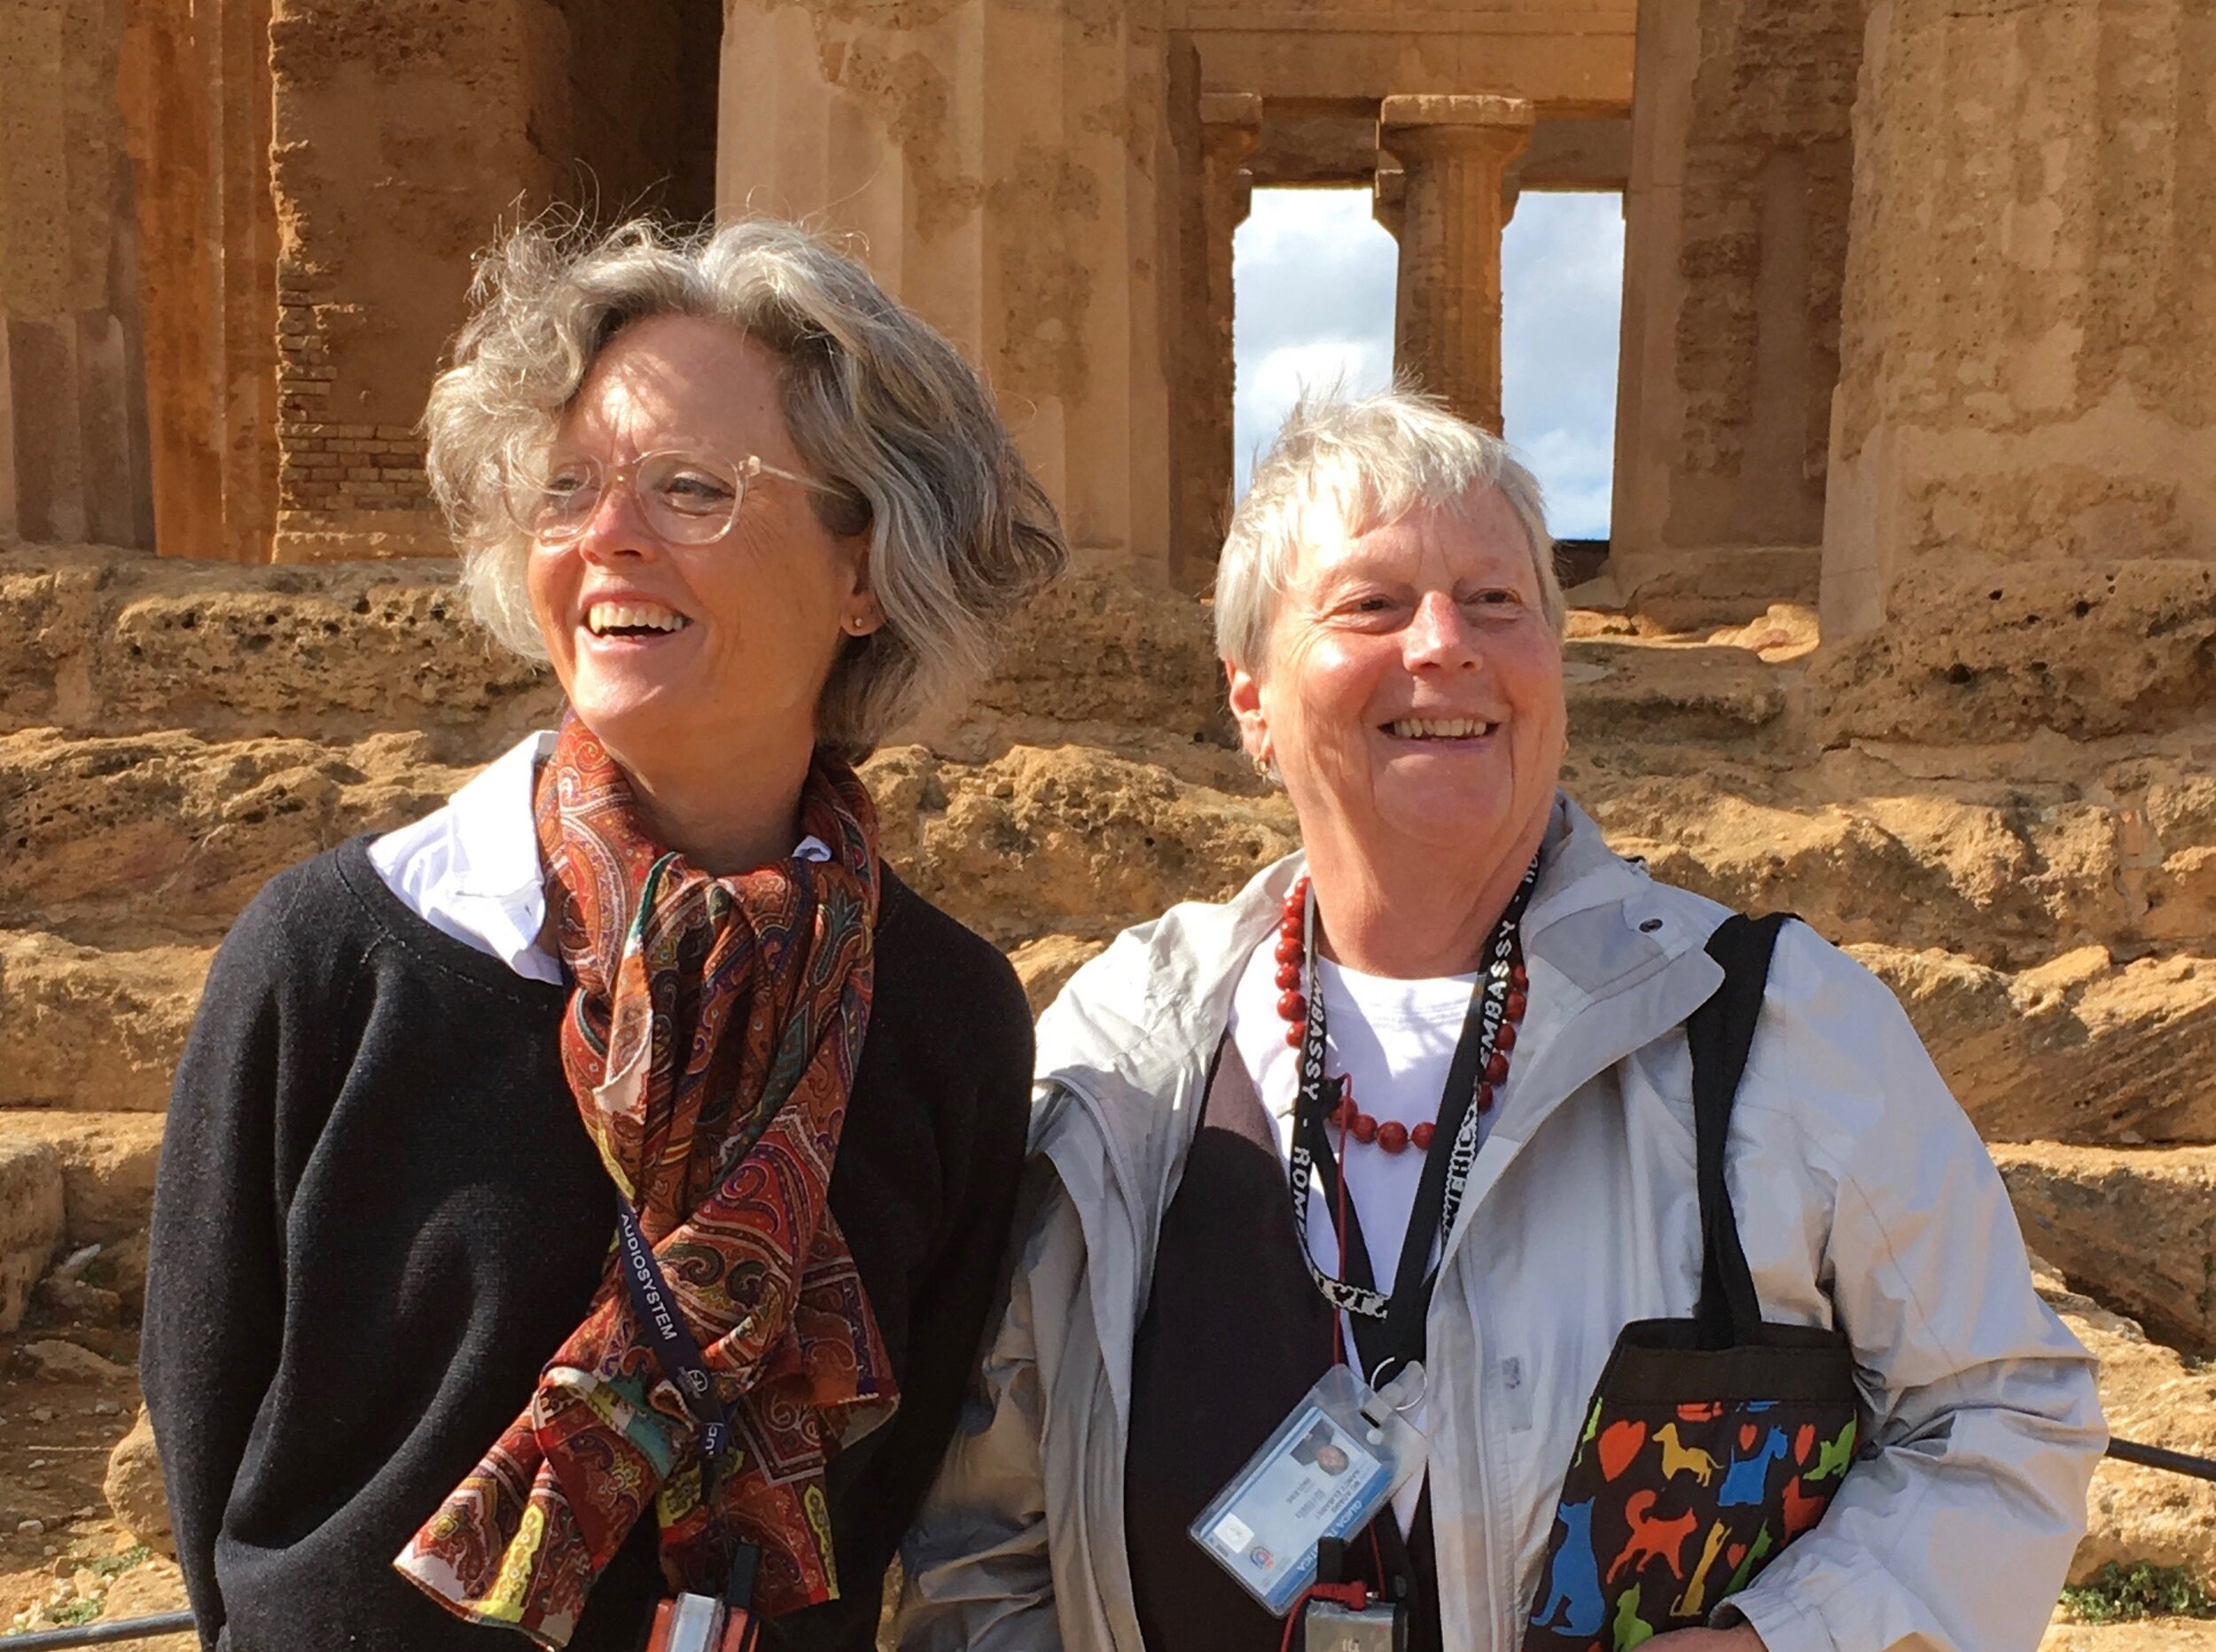 Libby and Nancy, savoring the ruins on a sunny morning in Sicily.